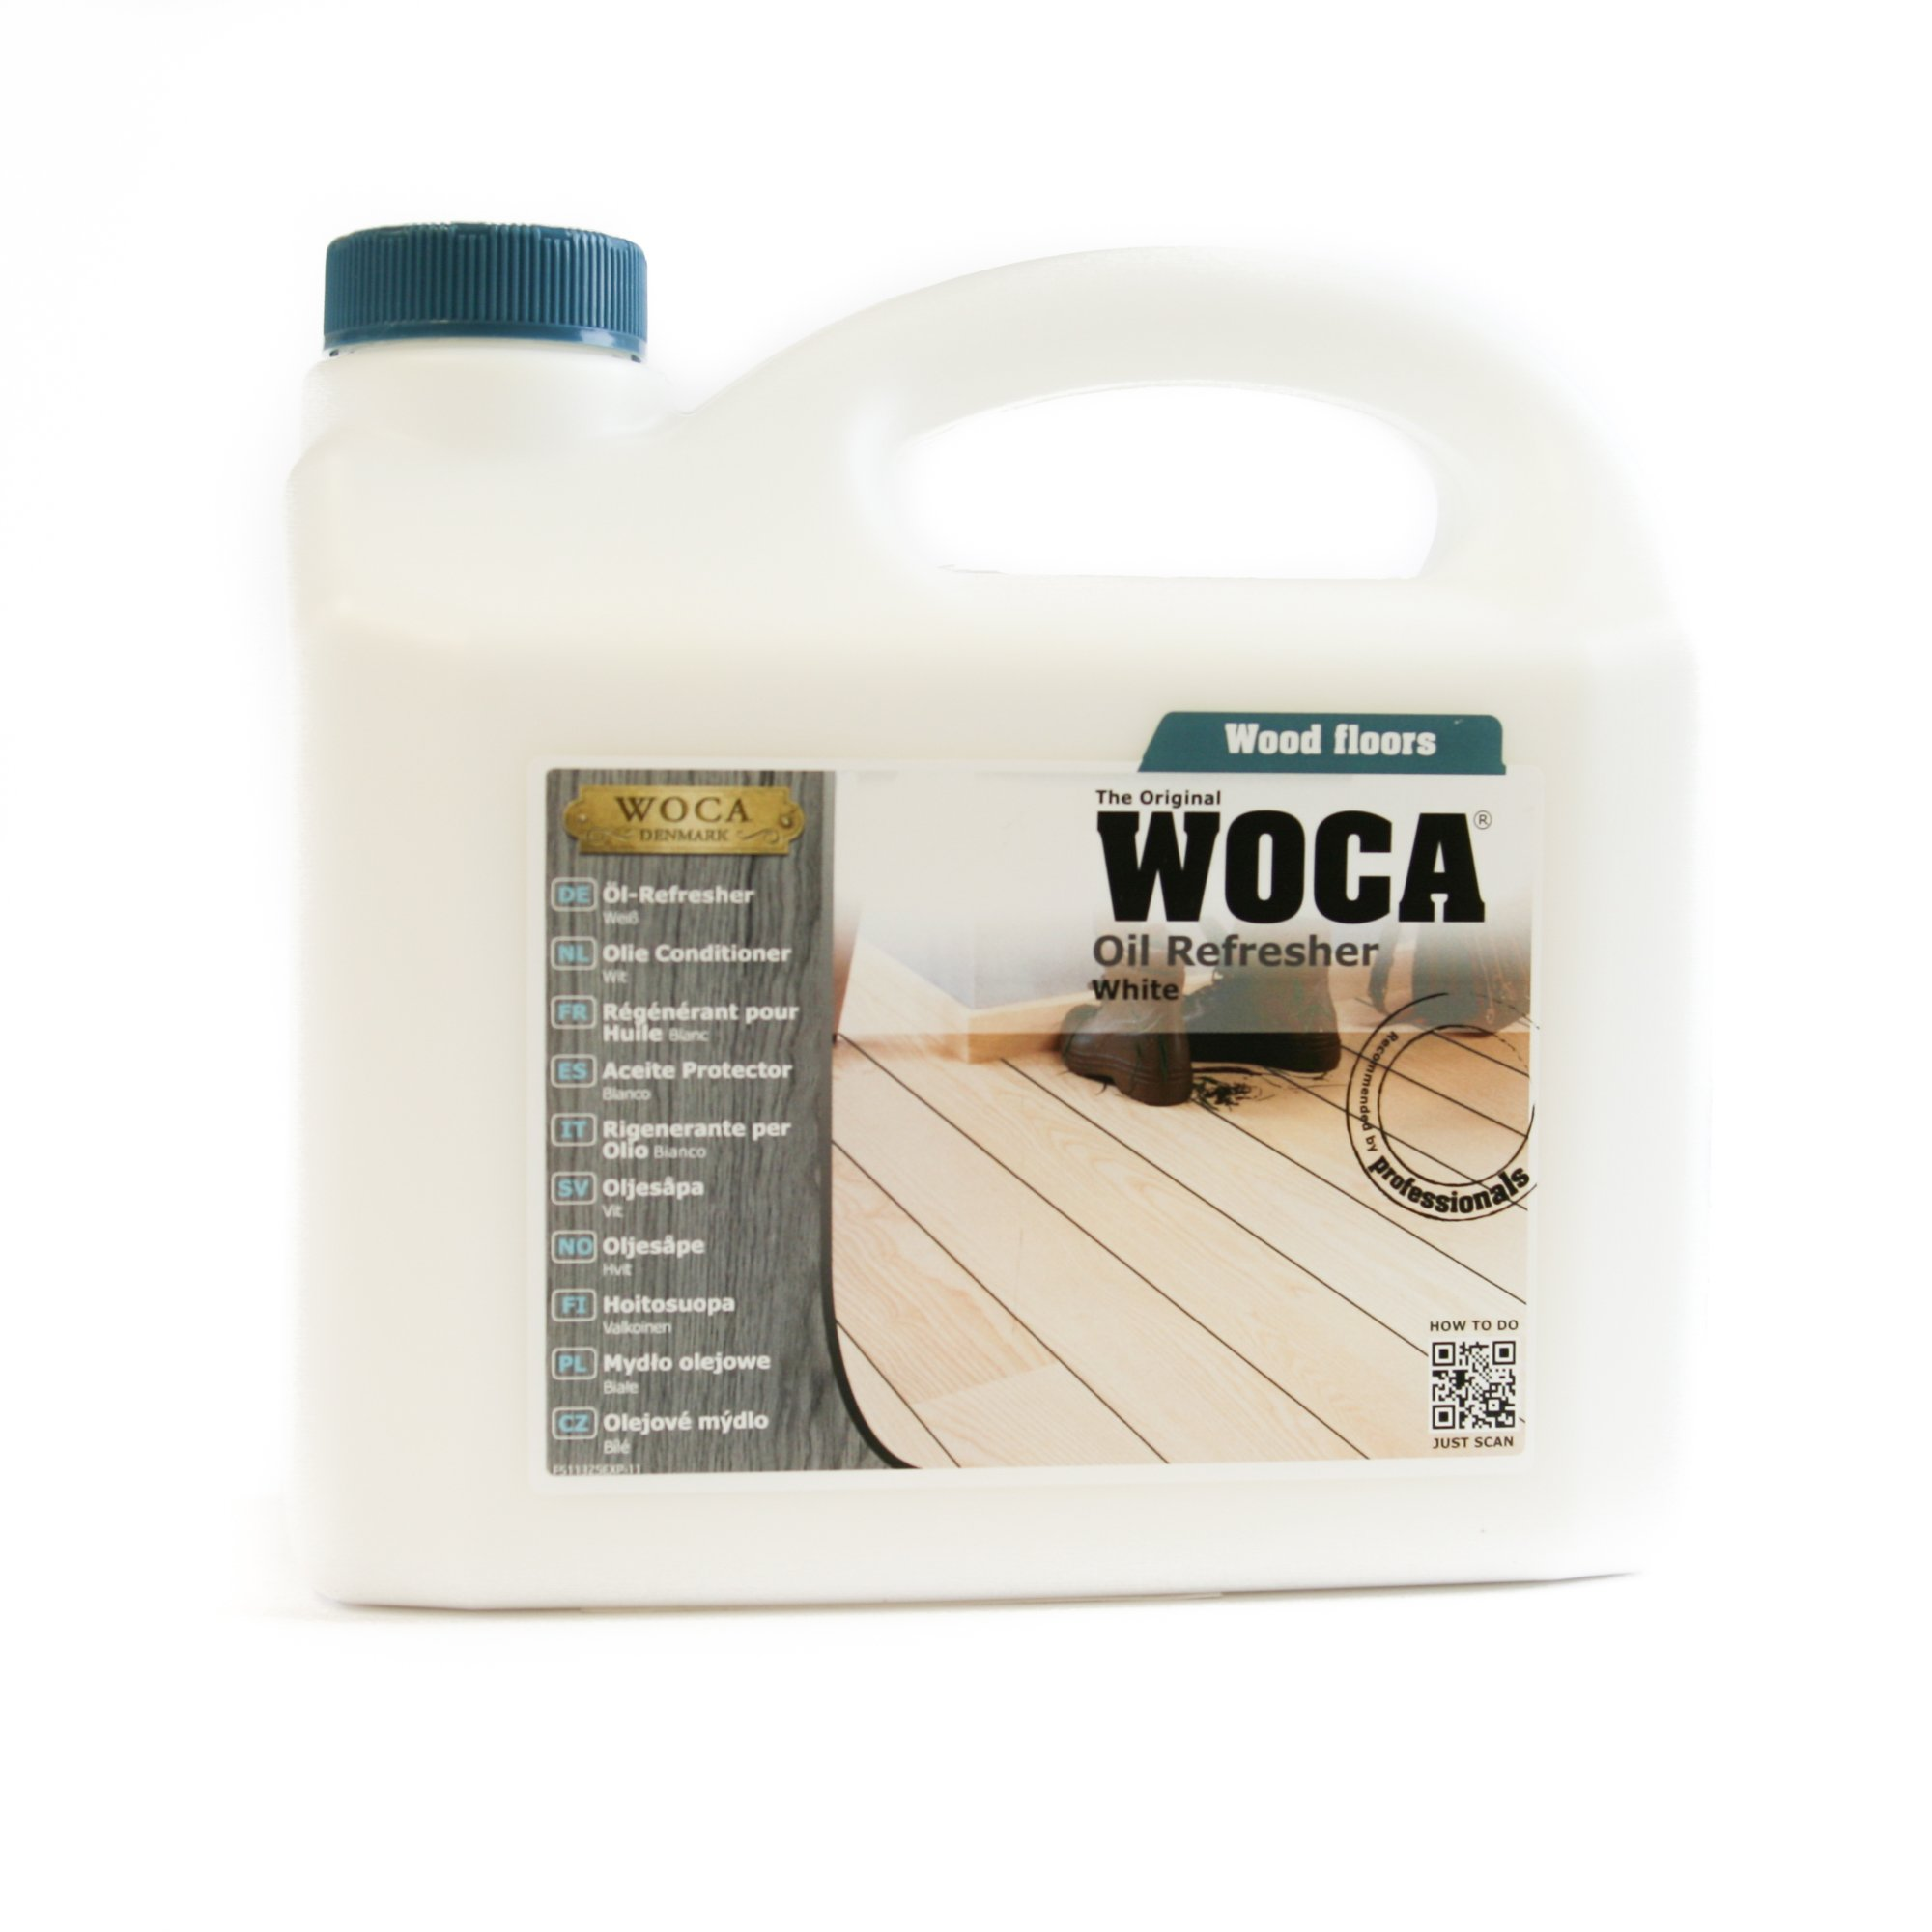 Woca Denmark- Oil Refresher 2.5 Liters (White) by WOCA (Image #1)